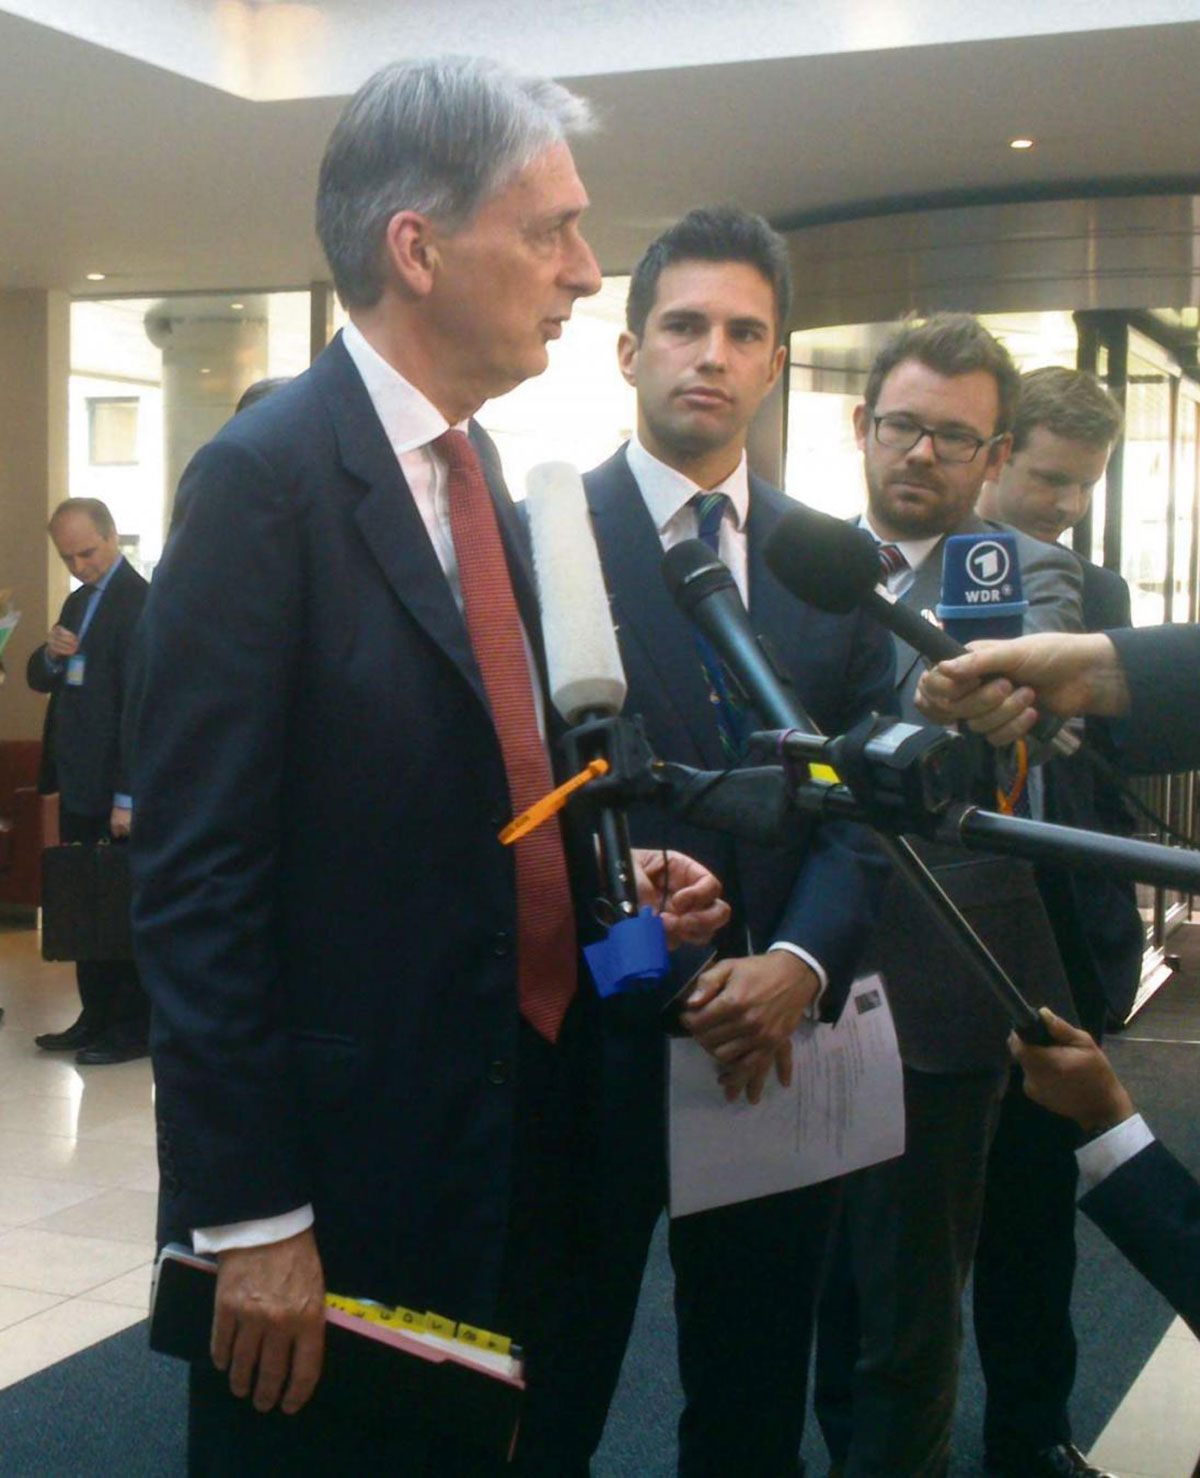 UK defence secretary Philip Hammond at the Nato headquarters in Brussels today